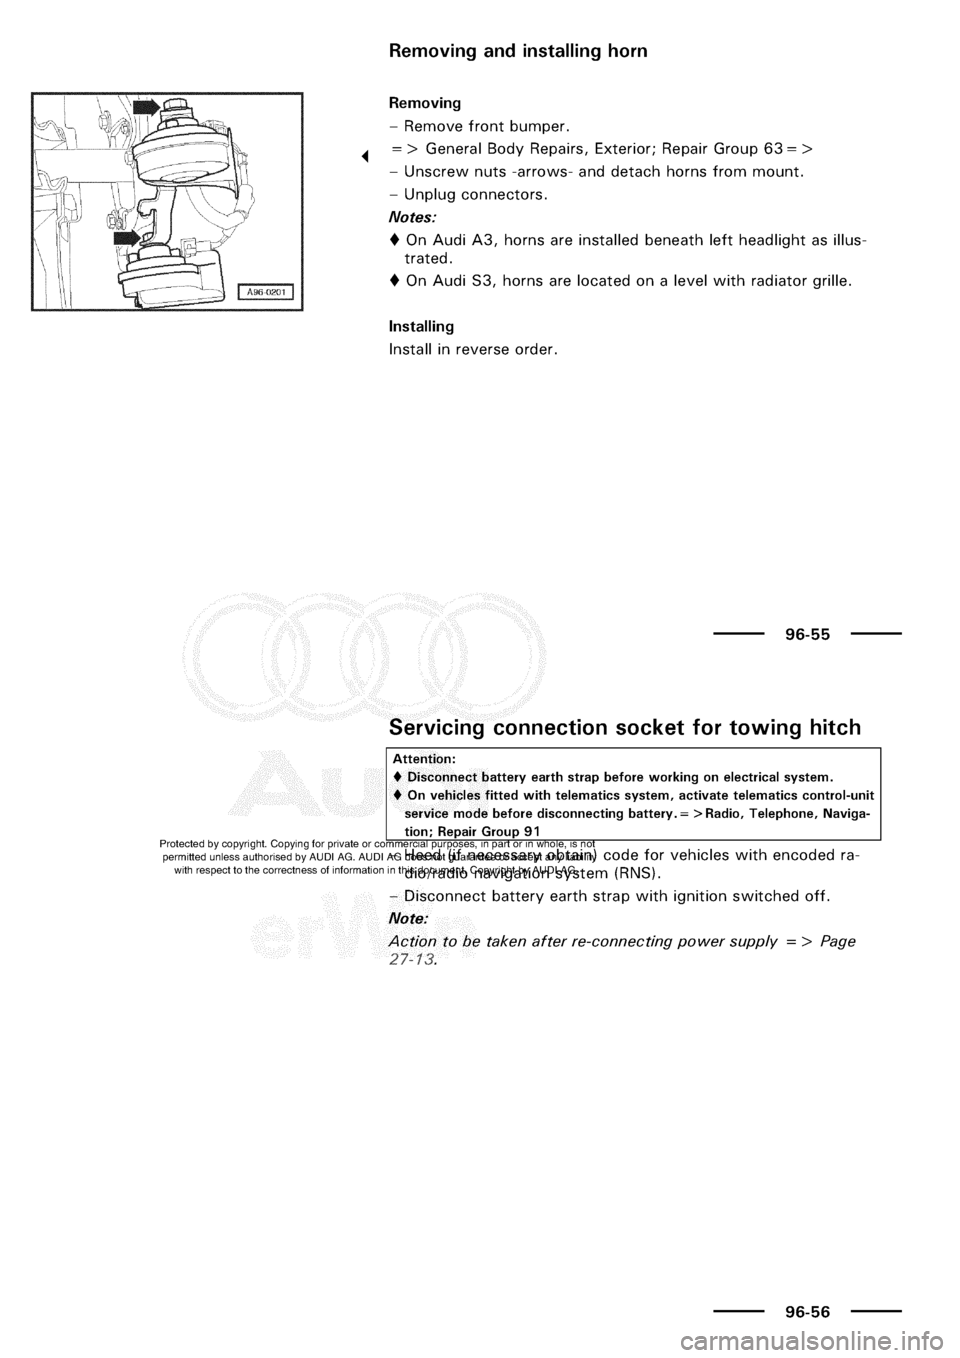 AUDI A3 2000 8L / 1.G Electrical System Workshop Manual